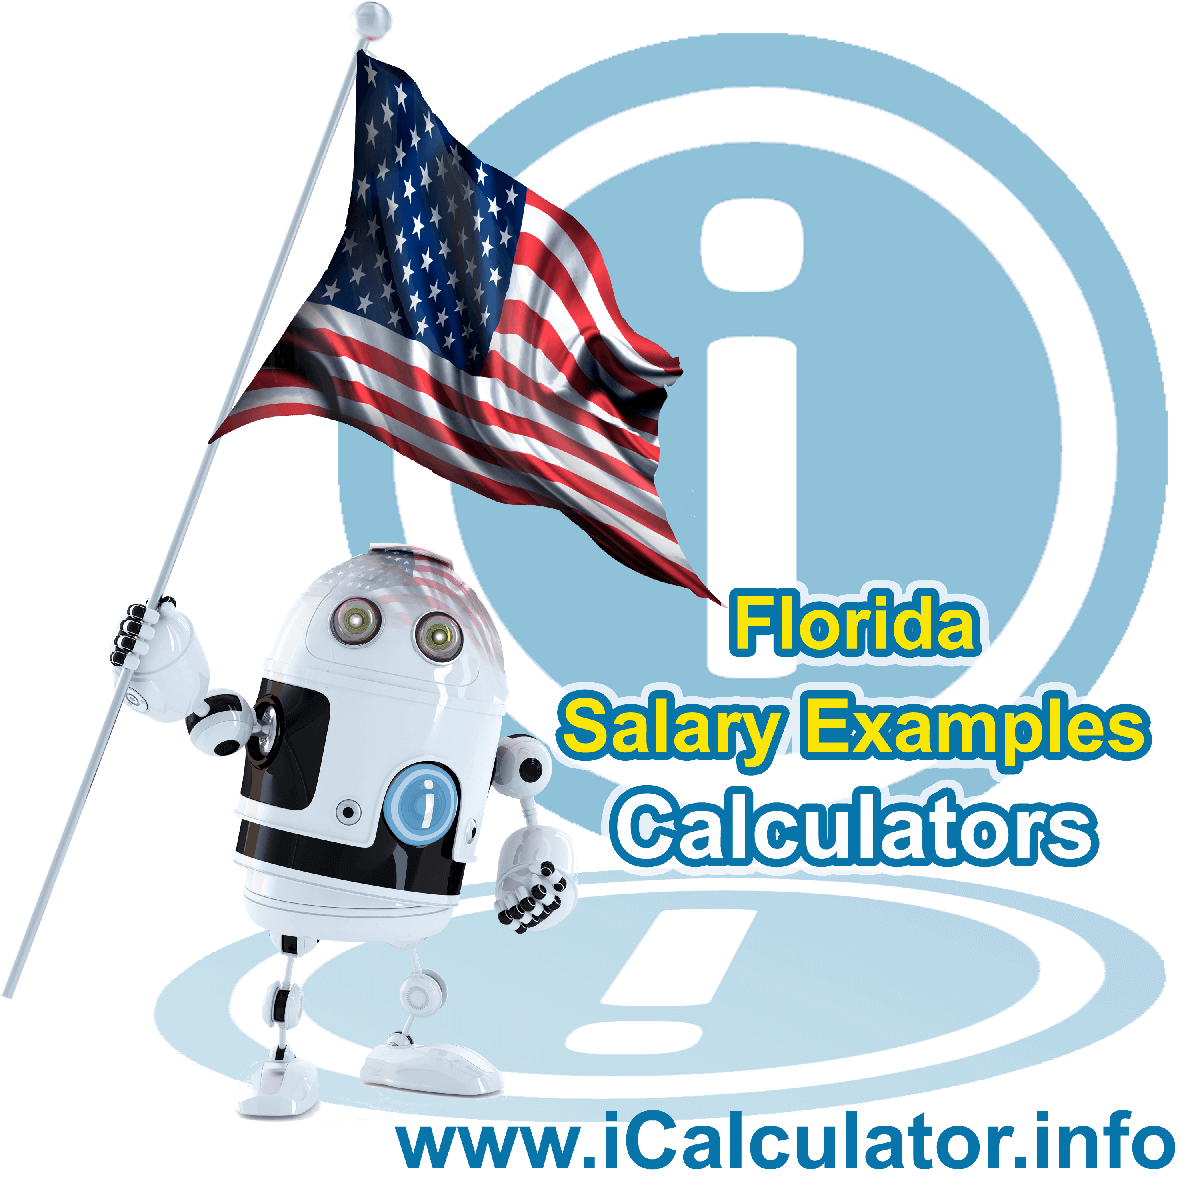 Florida Salary Example for $170.00 in 2020 | iCalculator | $170.00 salary example for employee and employer paying Florida State tincome taxes. Detailed salary after tax calculation including Florida State Tax, Federal State Tax, Medicare Deductions, Social Security, Capital Gains and other income tax and salary deductions complete with supporting Florida state tax tables